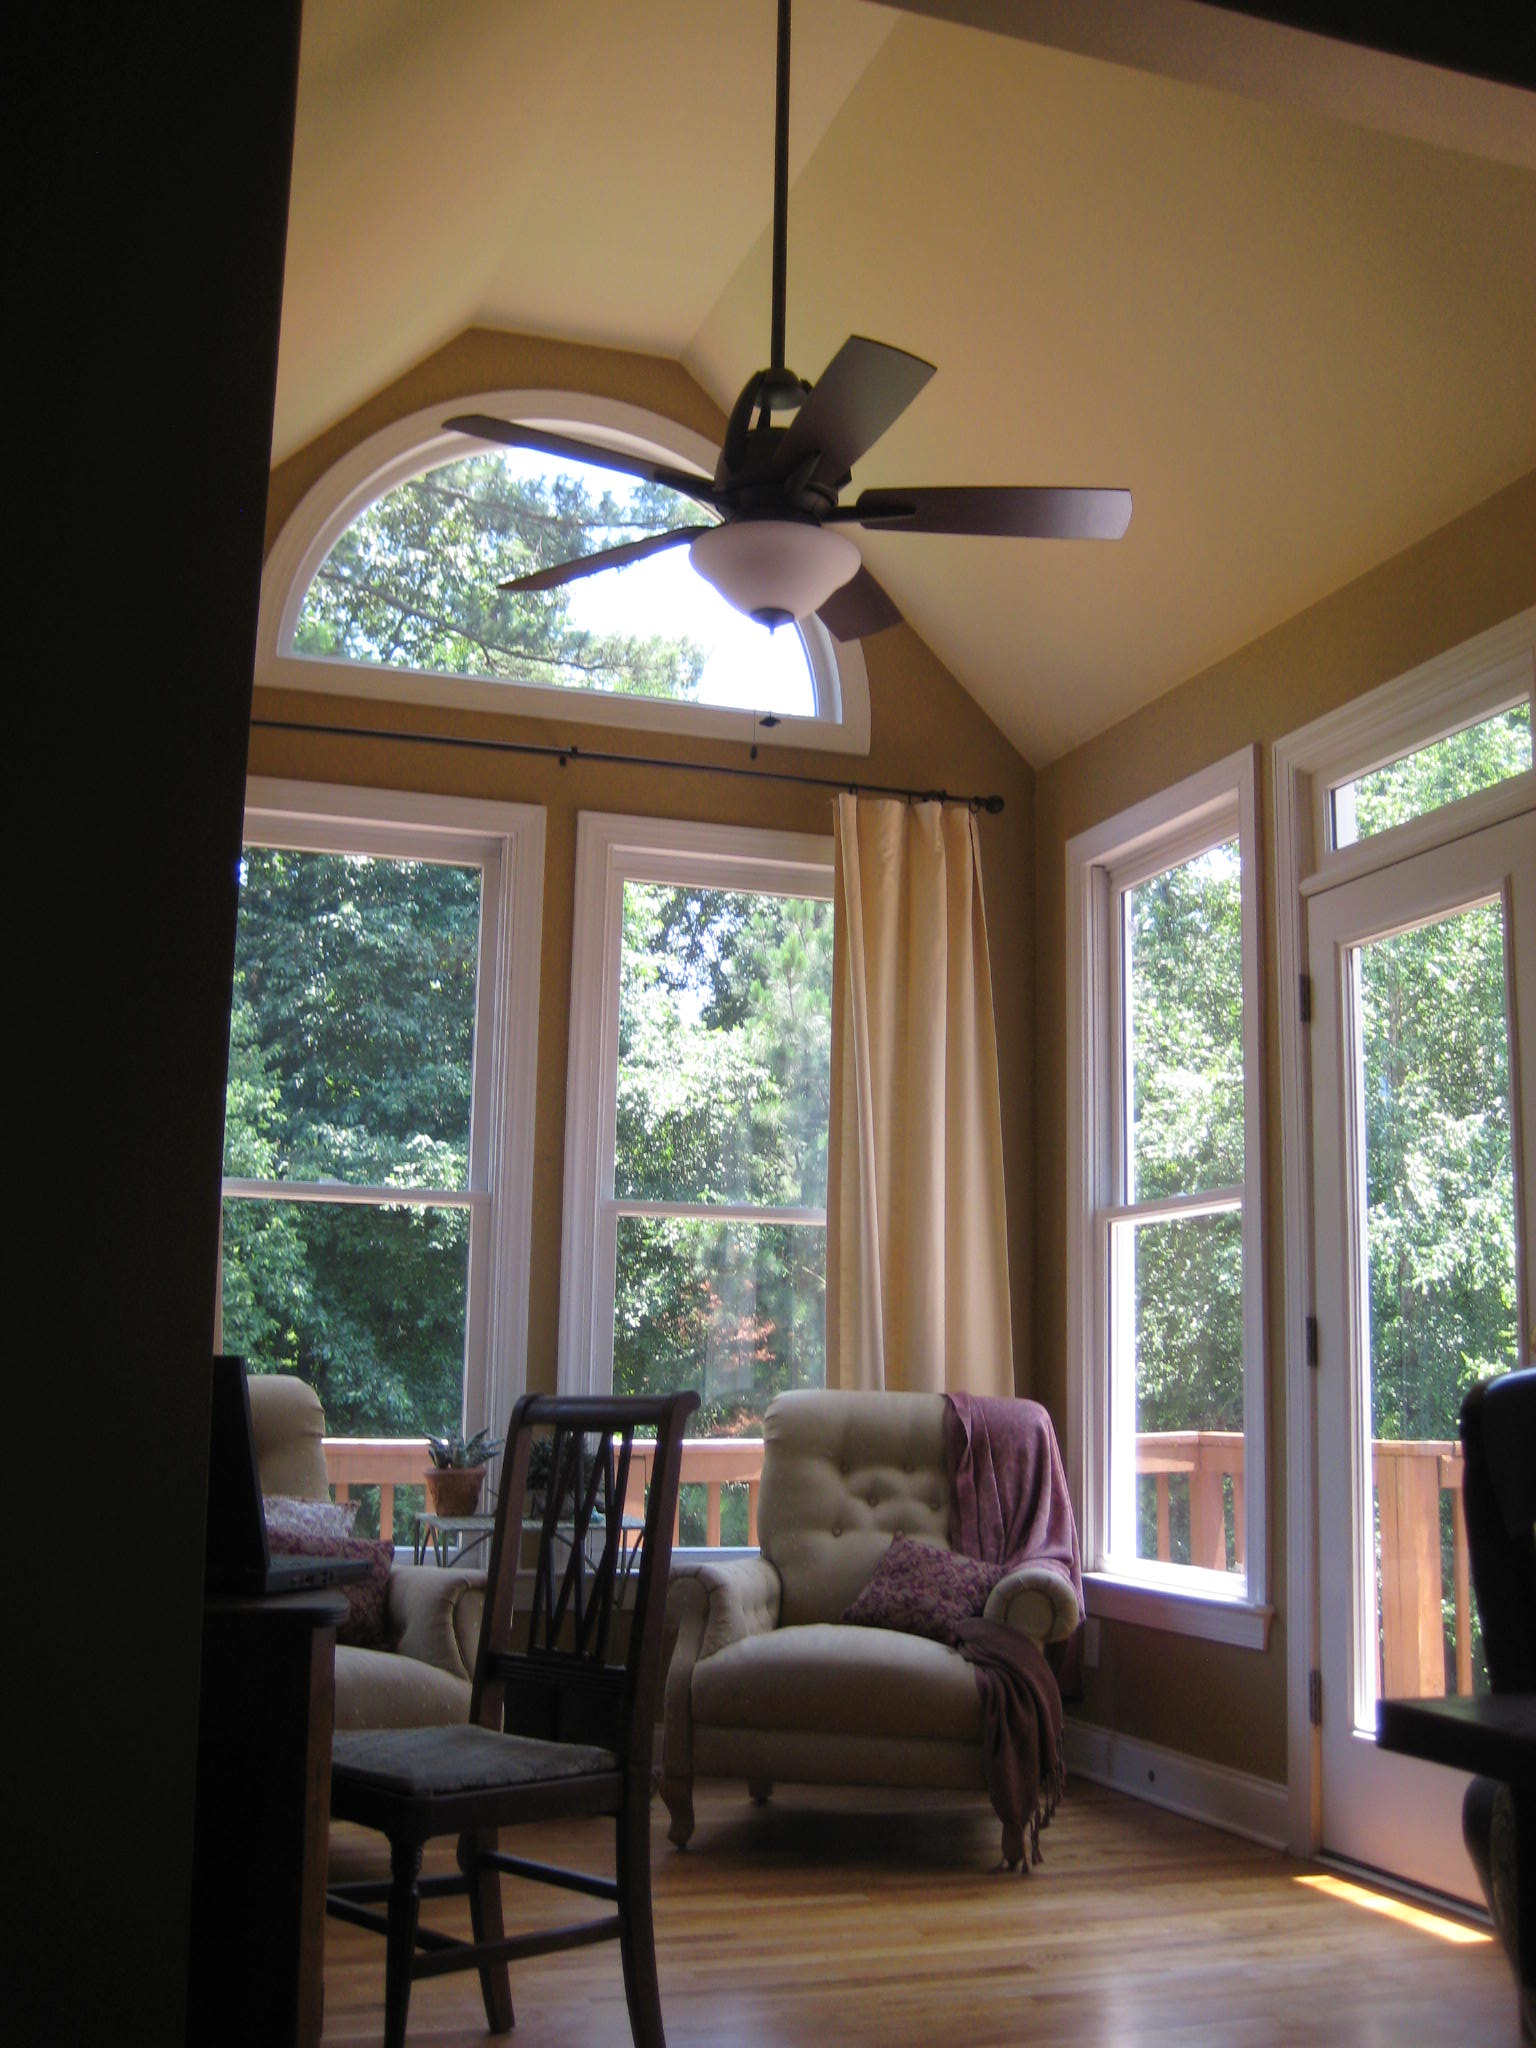 Cool off with updated ceiling fan.